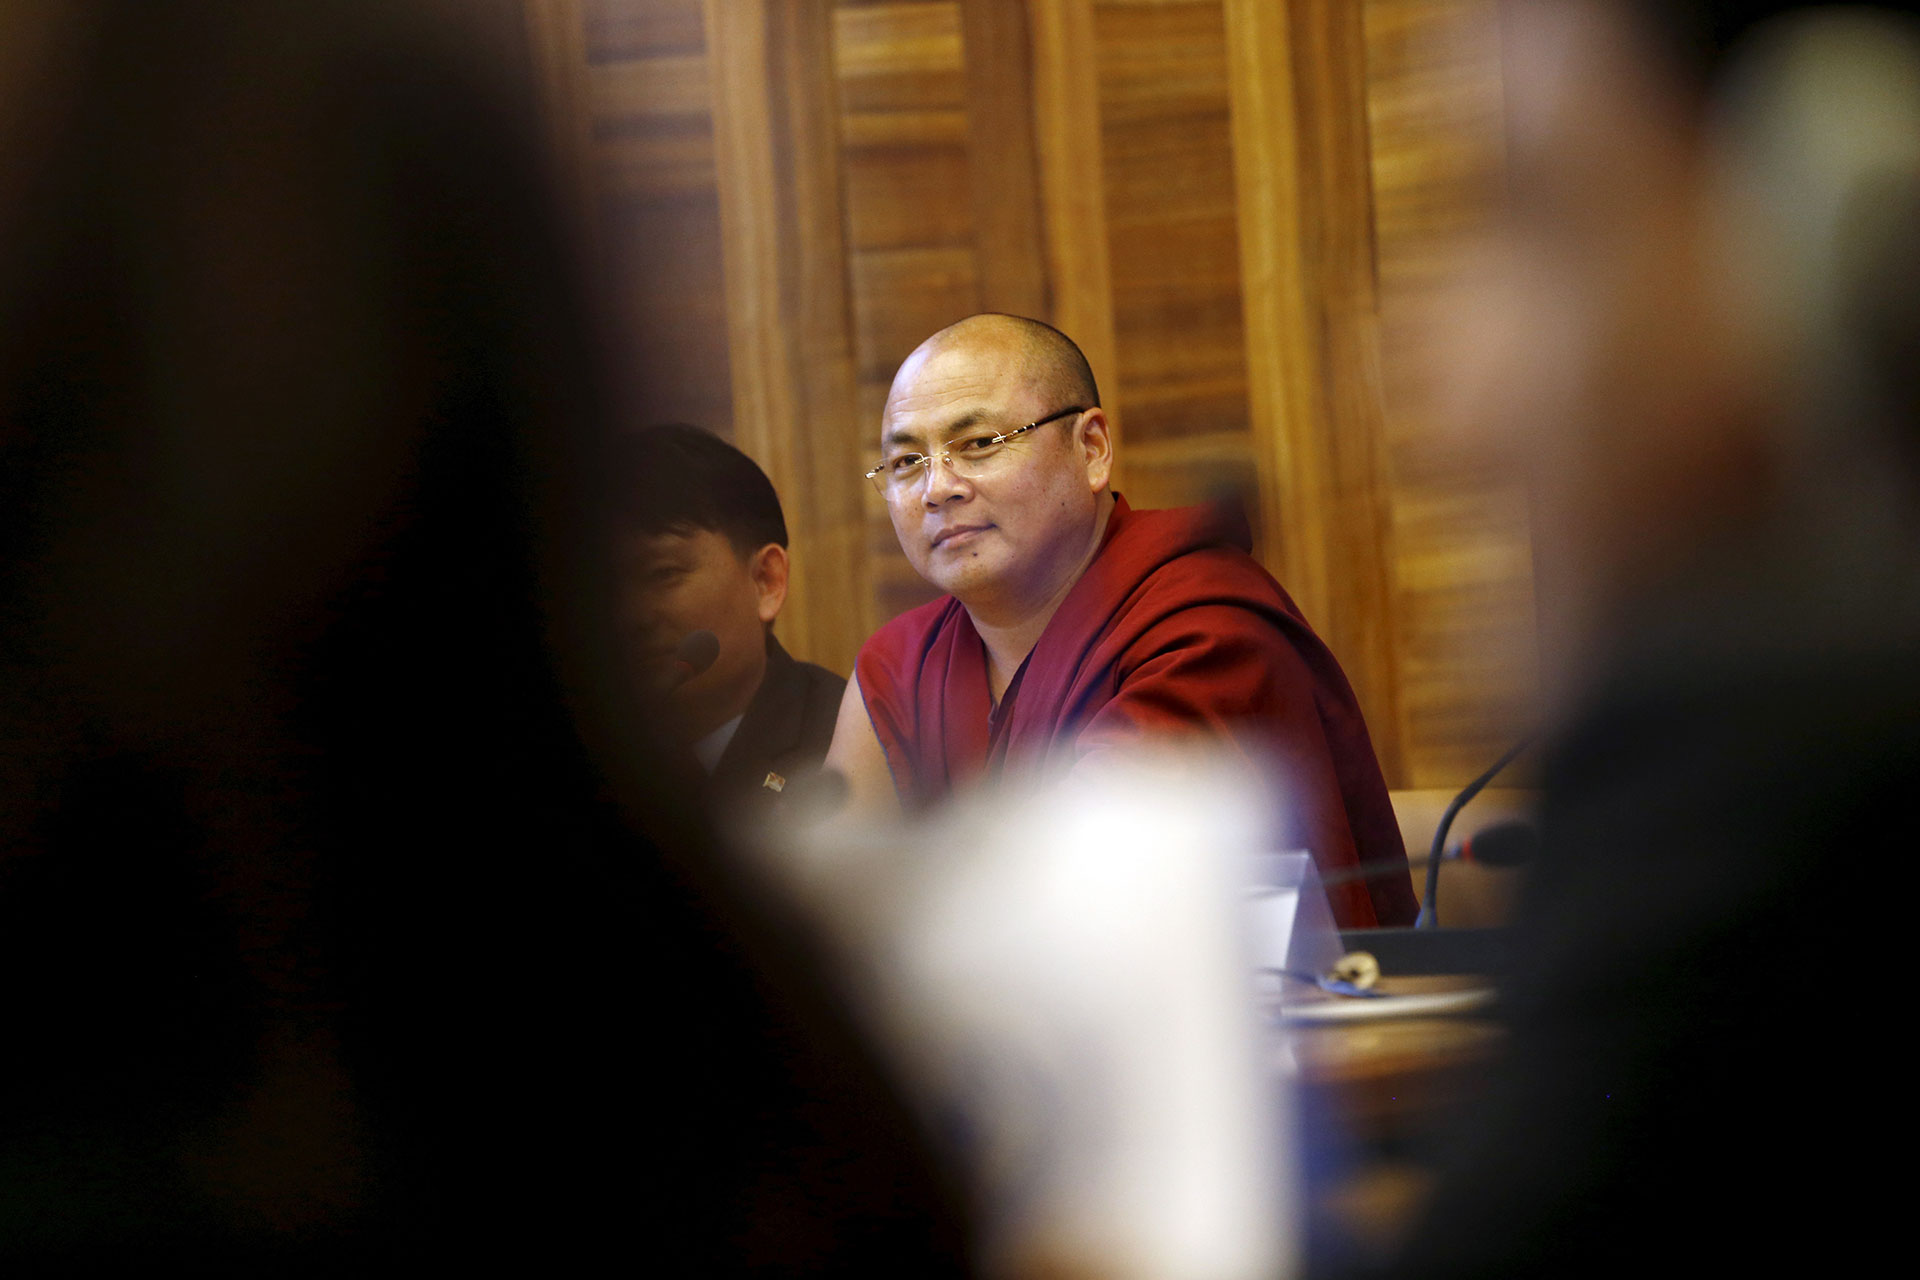 Tibetan monk Golog Jigme, who escaped from detention in China in 2012, addressing a side event during the June session this year of the United Nations Human Rights Council in Geneva. He and other activists say Chinese agents are hounding them at the U.N. body. ( Photo courtesy: REUTERS)